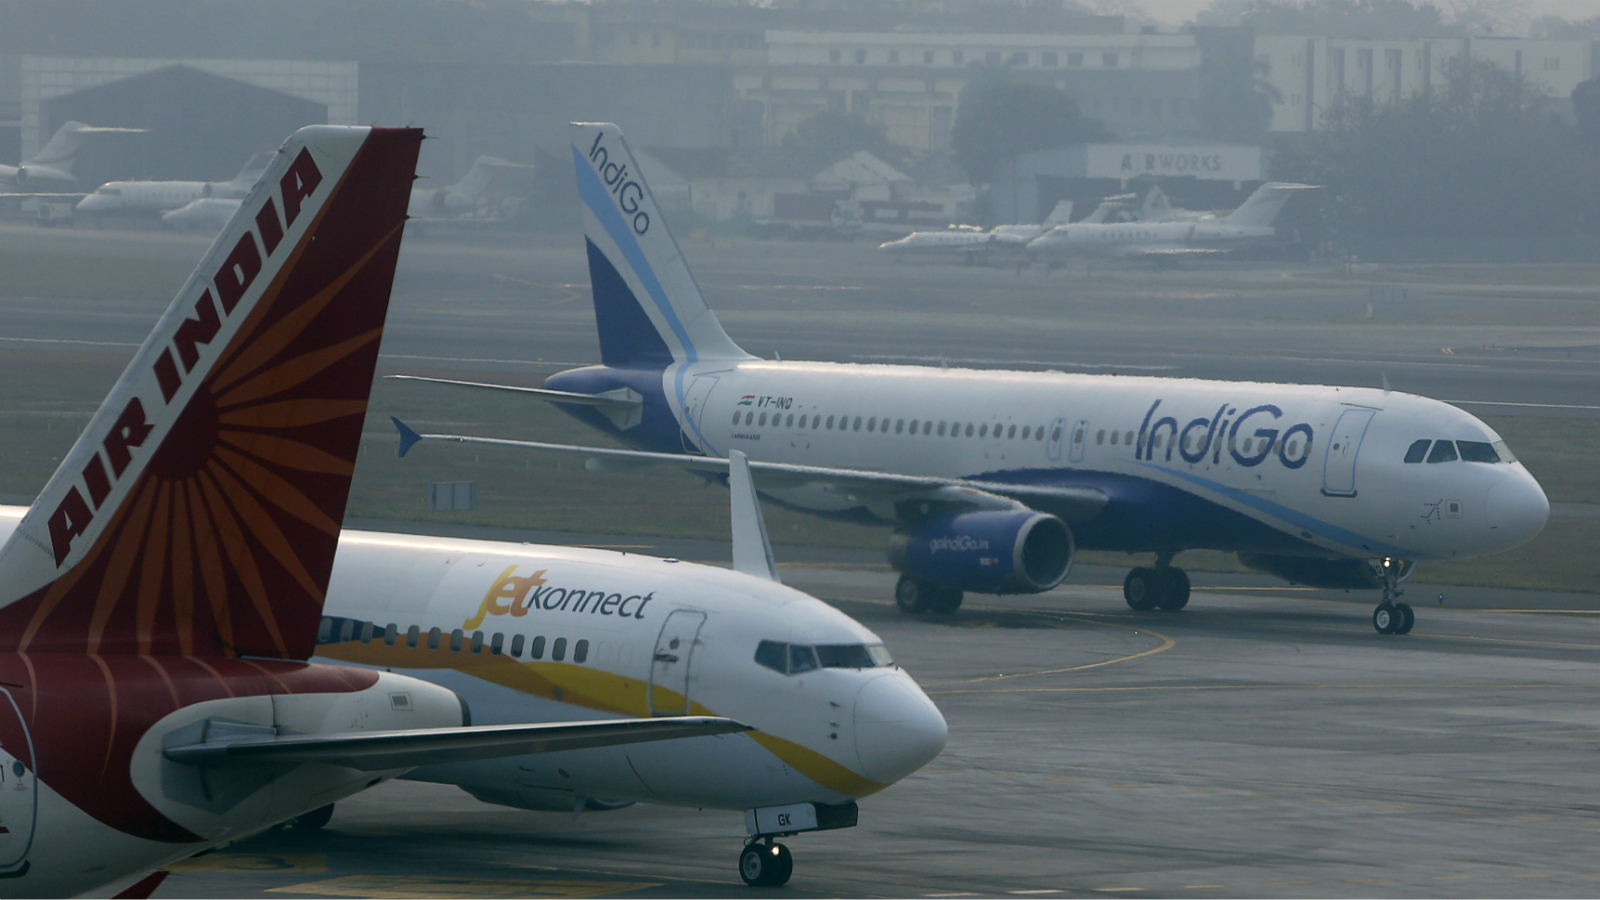 An IndiGo Airlines Airbus A320 aircraft and JetKonnect Boeing 737 aircraft taxi past an Air India Airbus A321 aircraft at Mumbai's Chhatrapathi Shivaji International Airport February 3, 2013. Picture taken February 3, 2013.